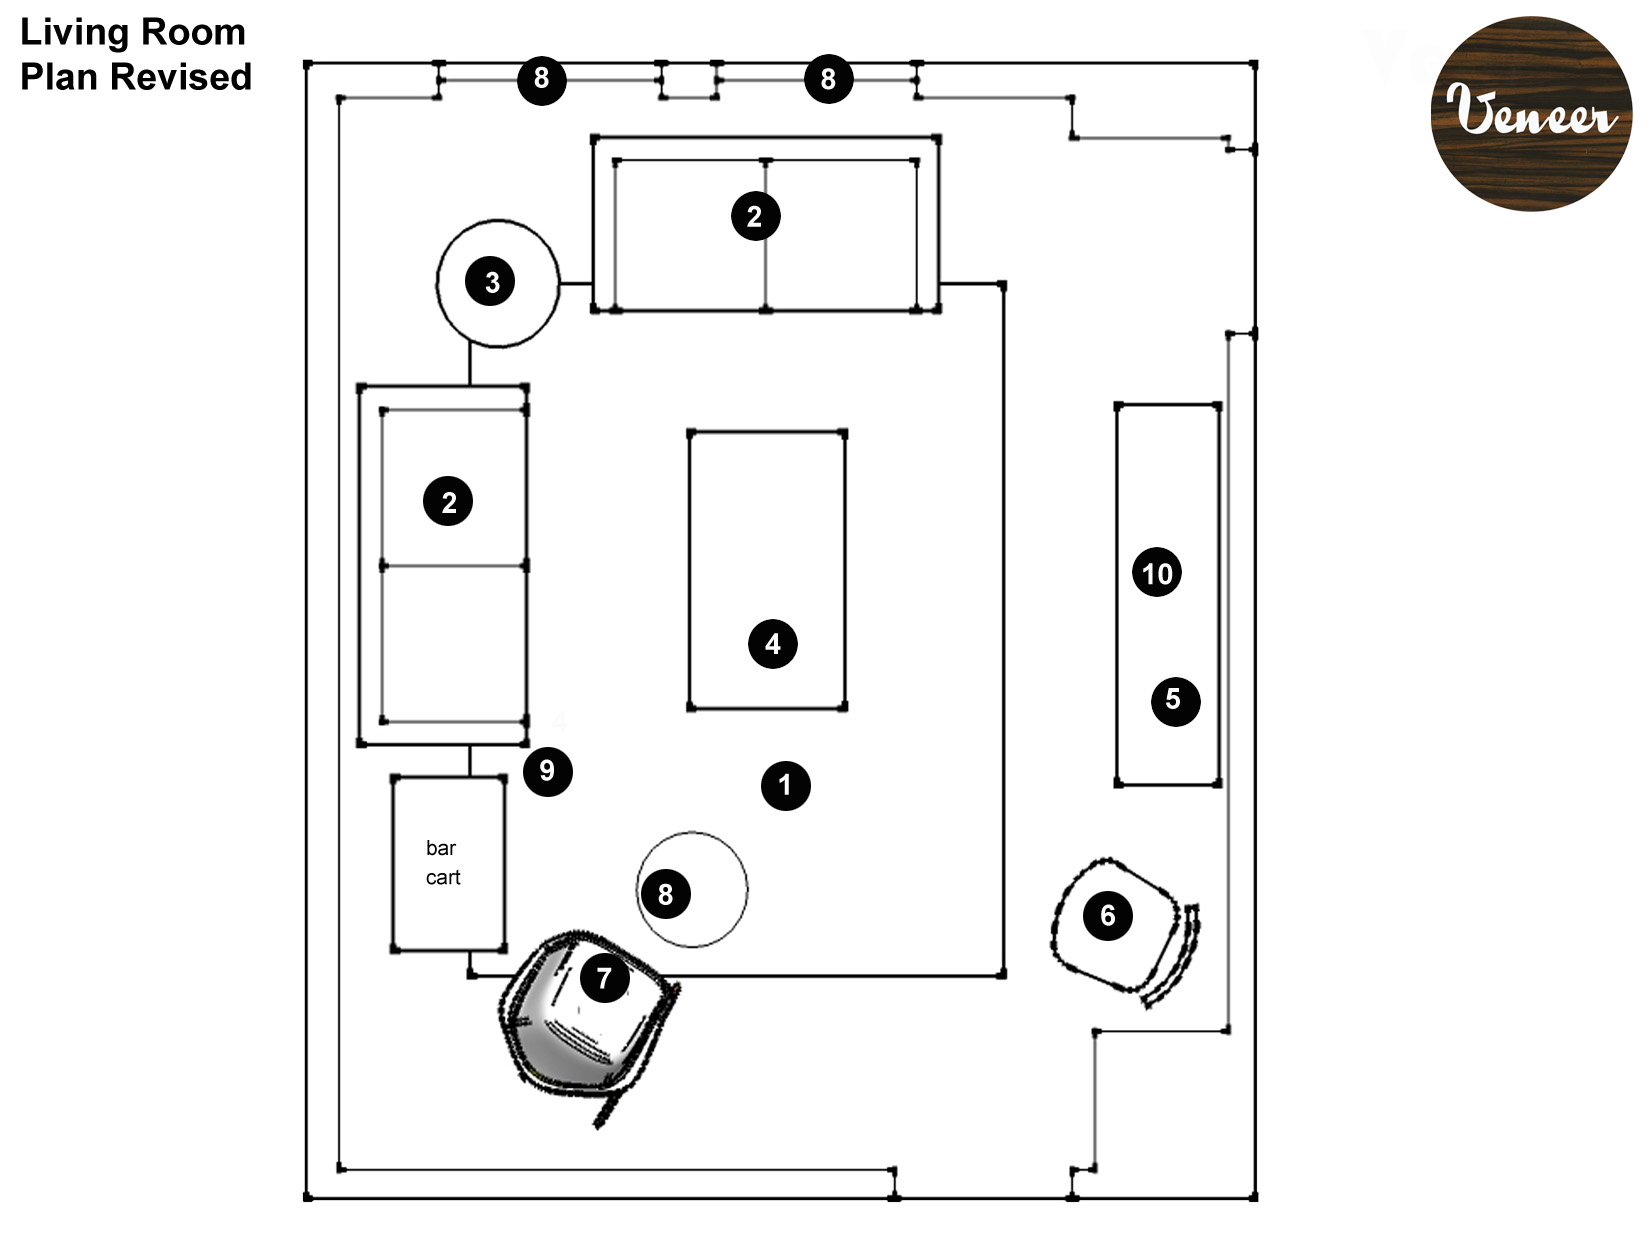 living room plan R